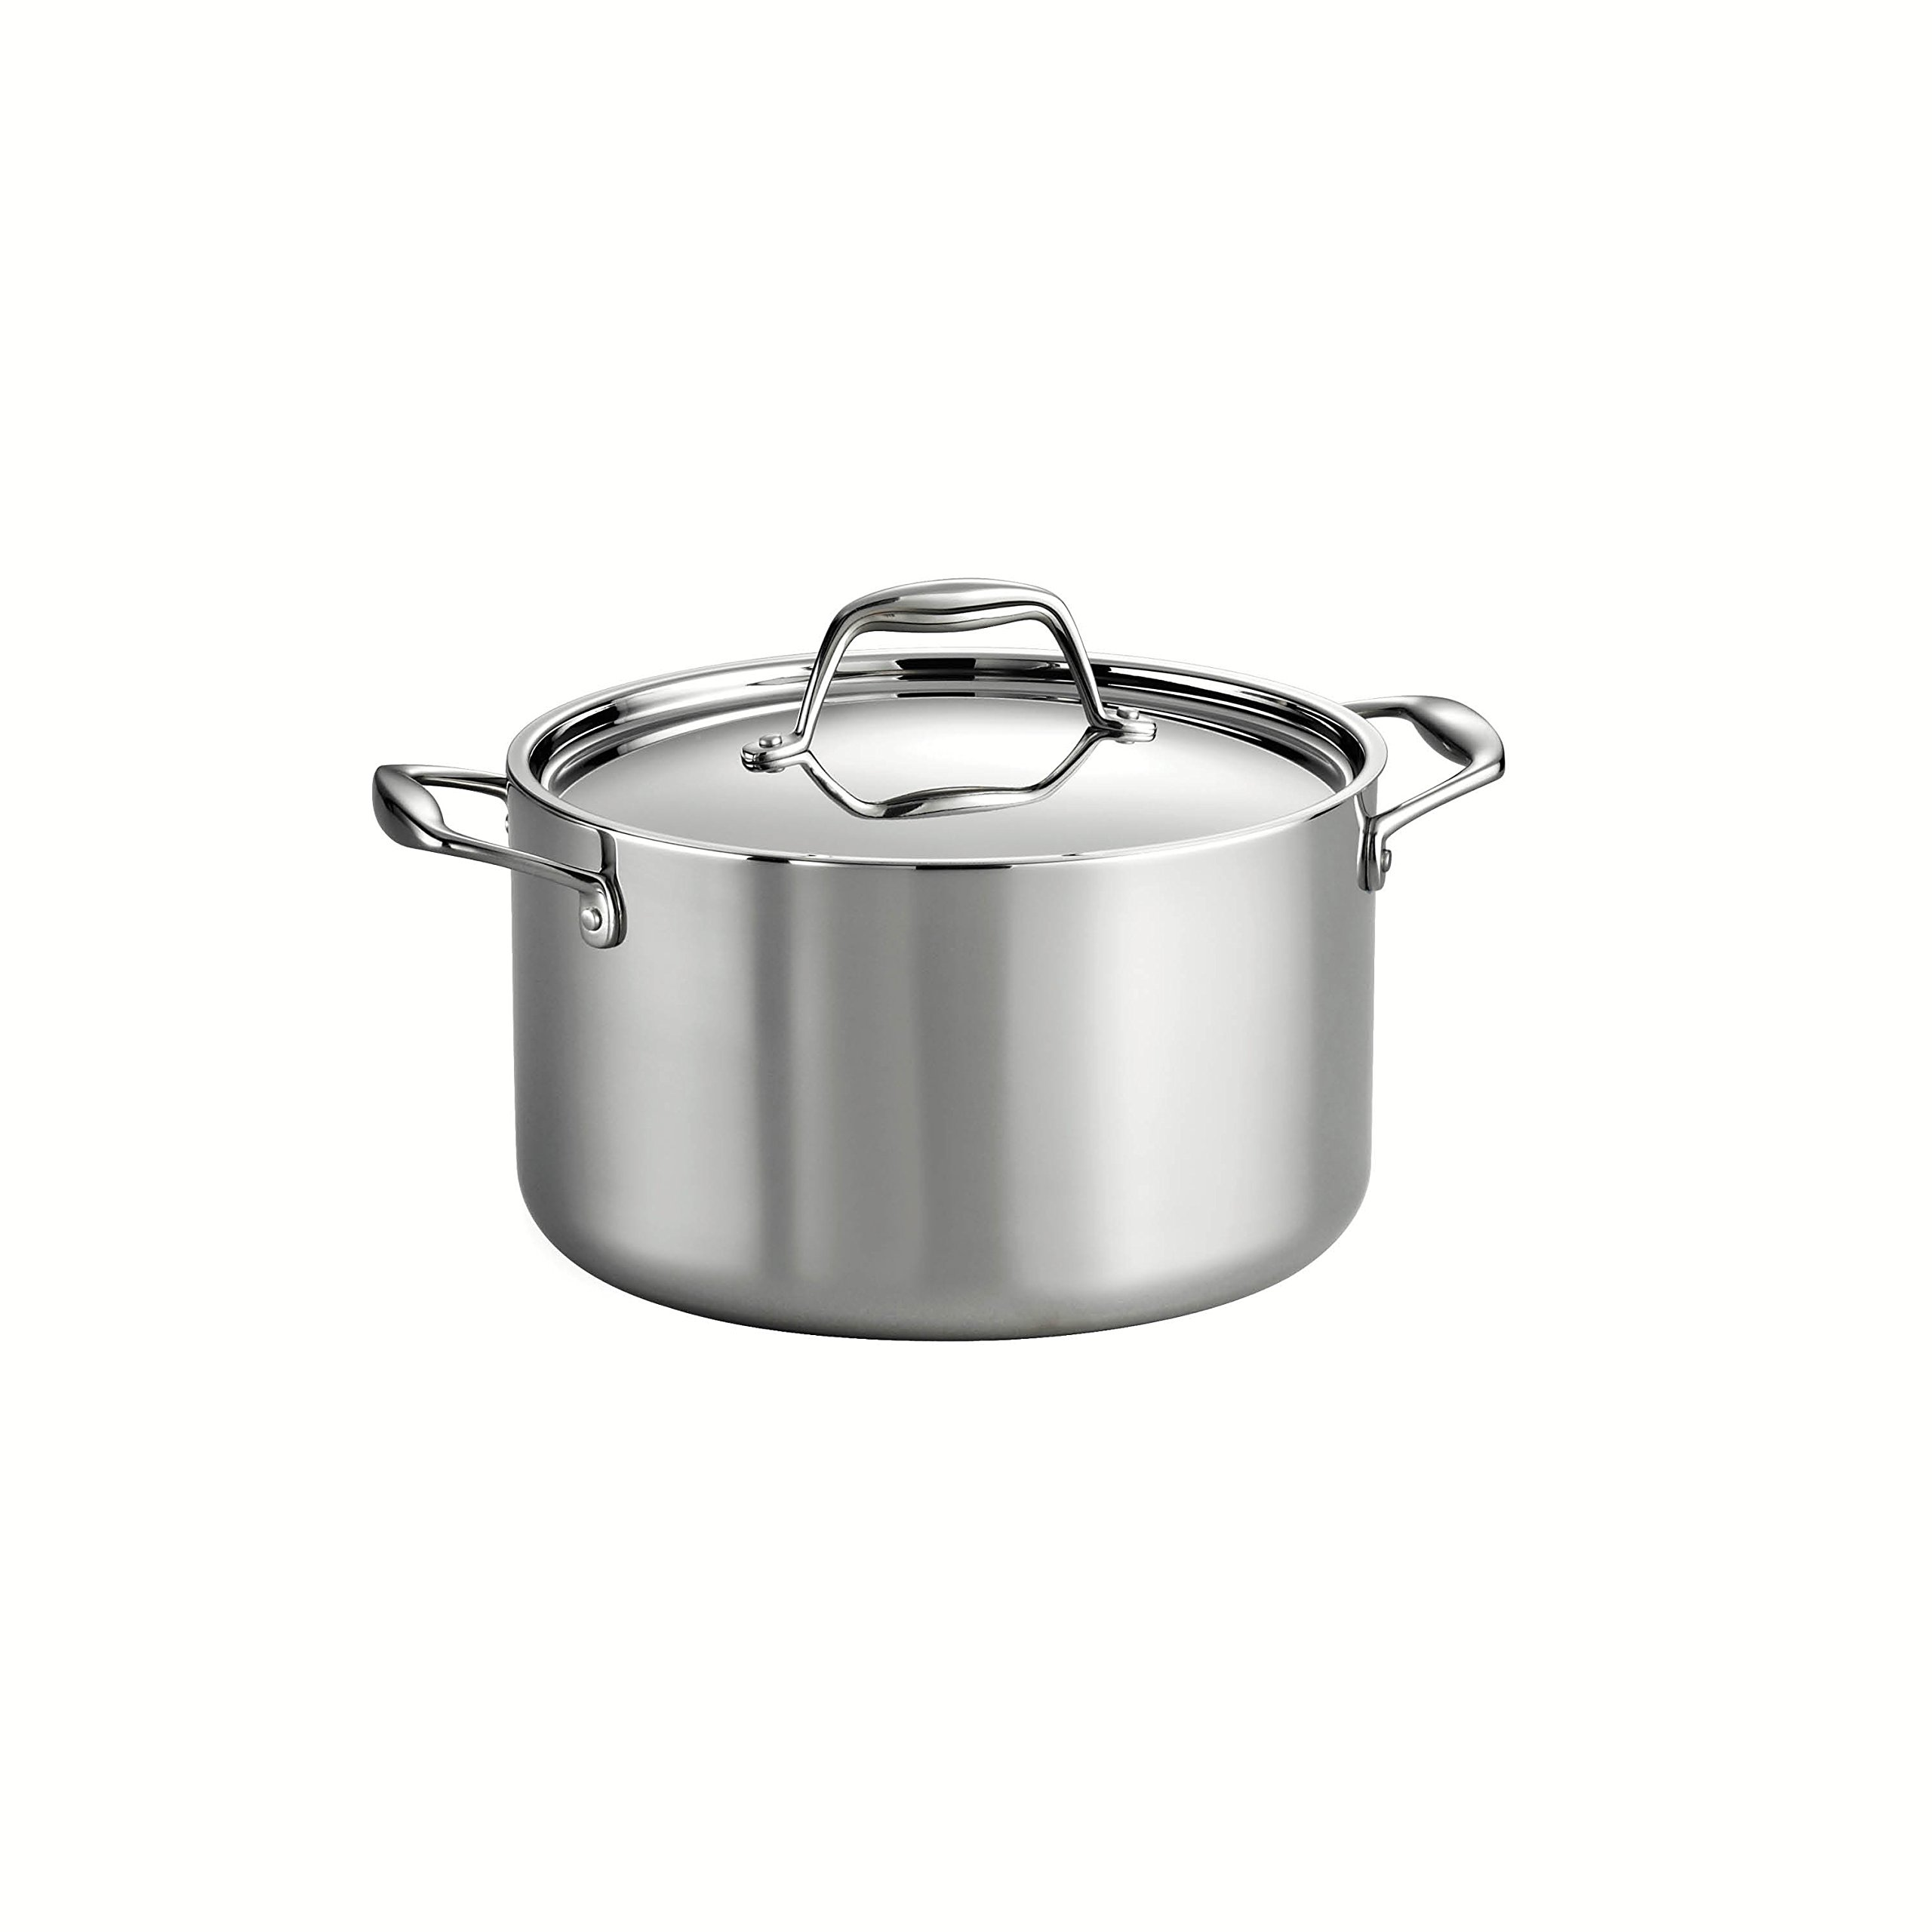 Tramontina 80116/040DS Gourmet Stainless Steel Induction-Ready Tri-Ply Clad Covered Sauce Pot, 6-Quart, NSF-Certified, Made in Brazil